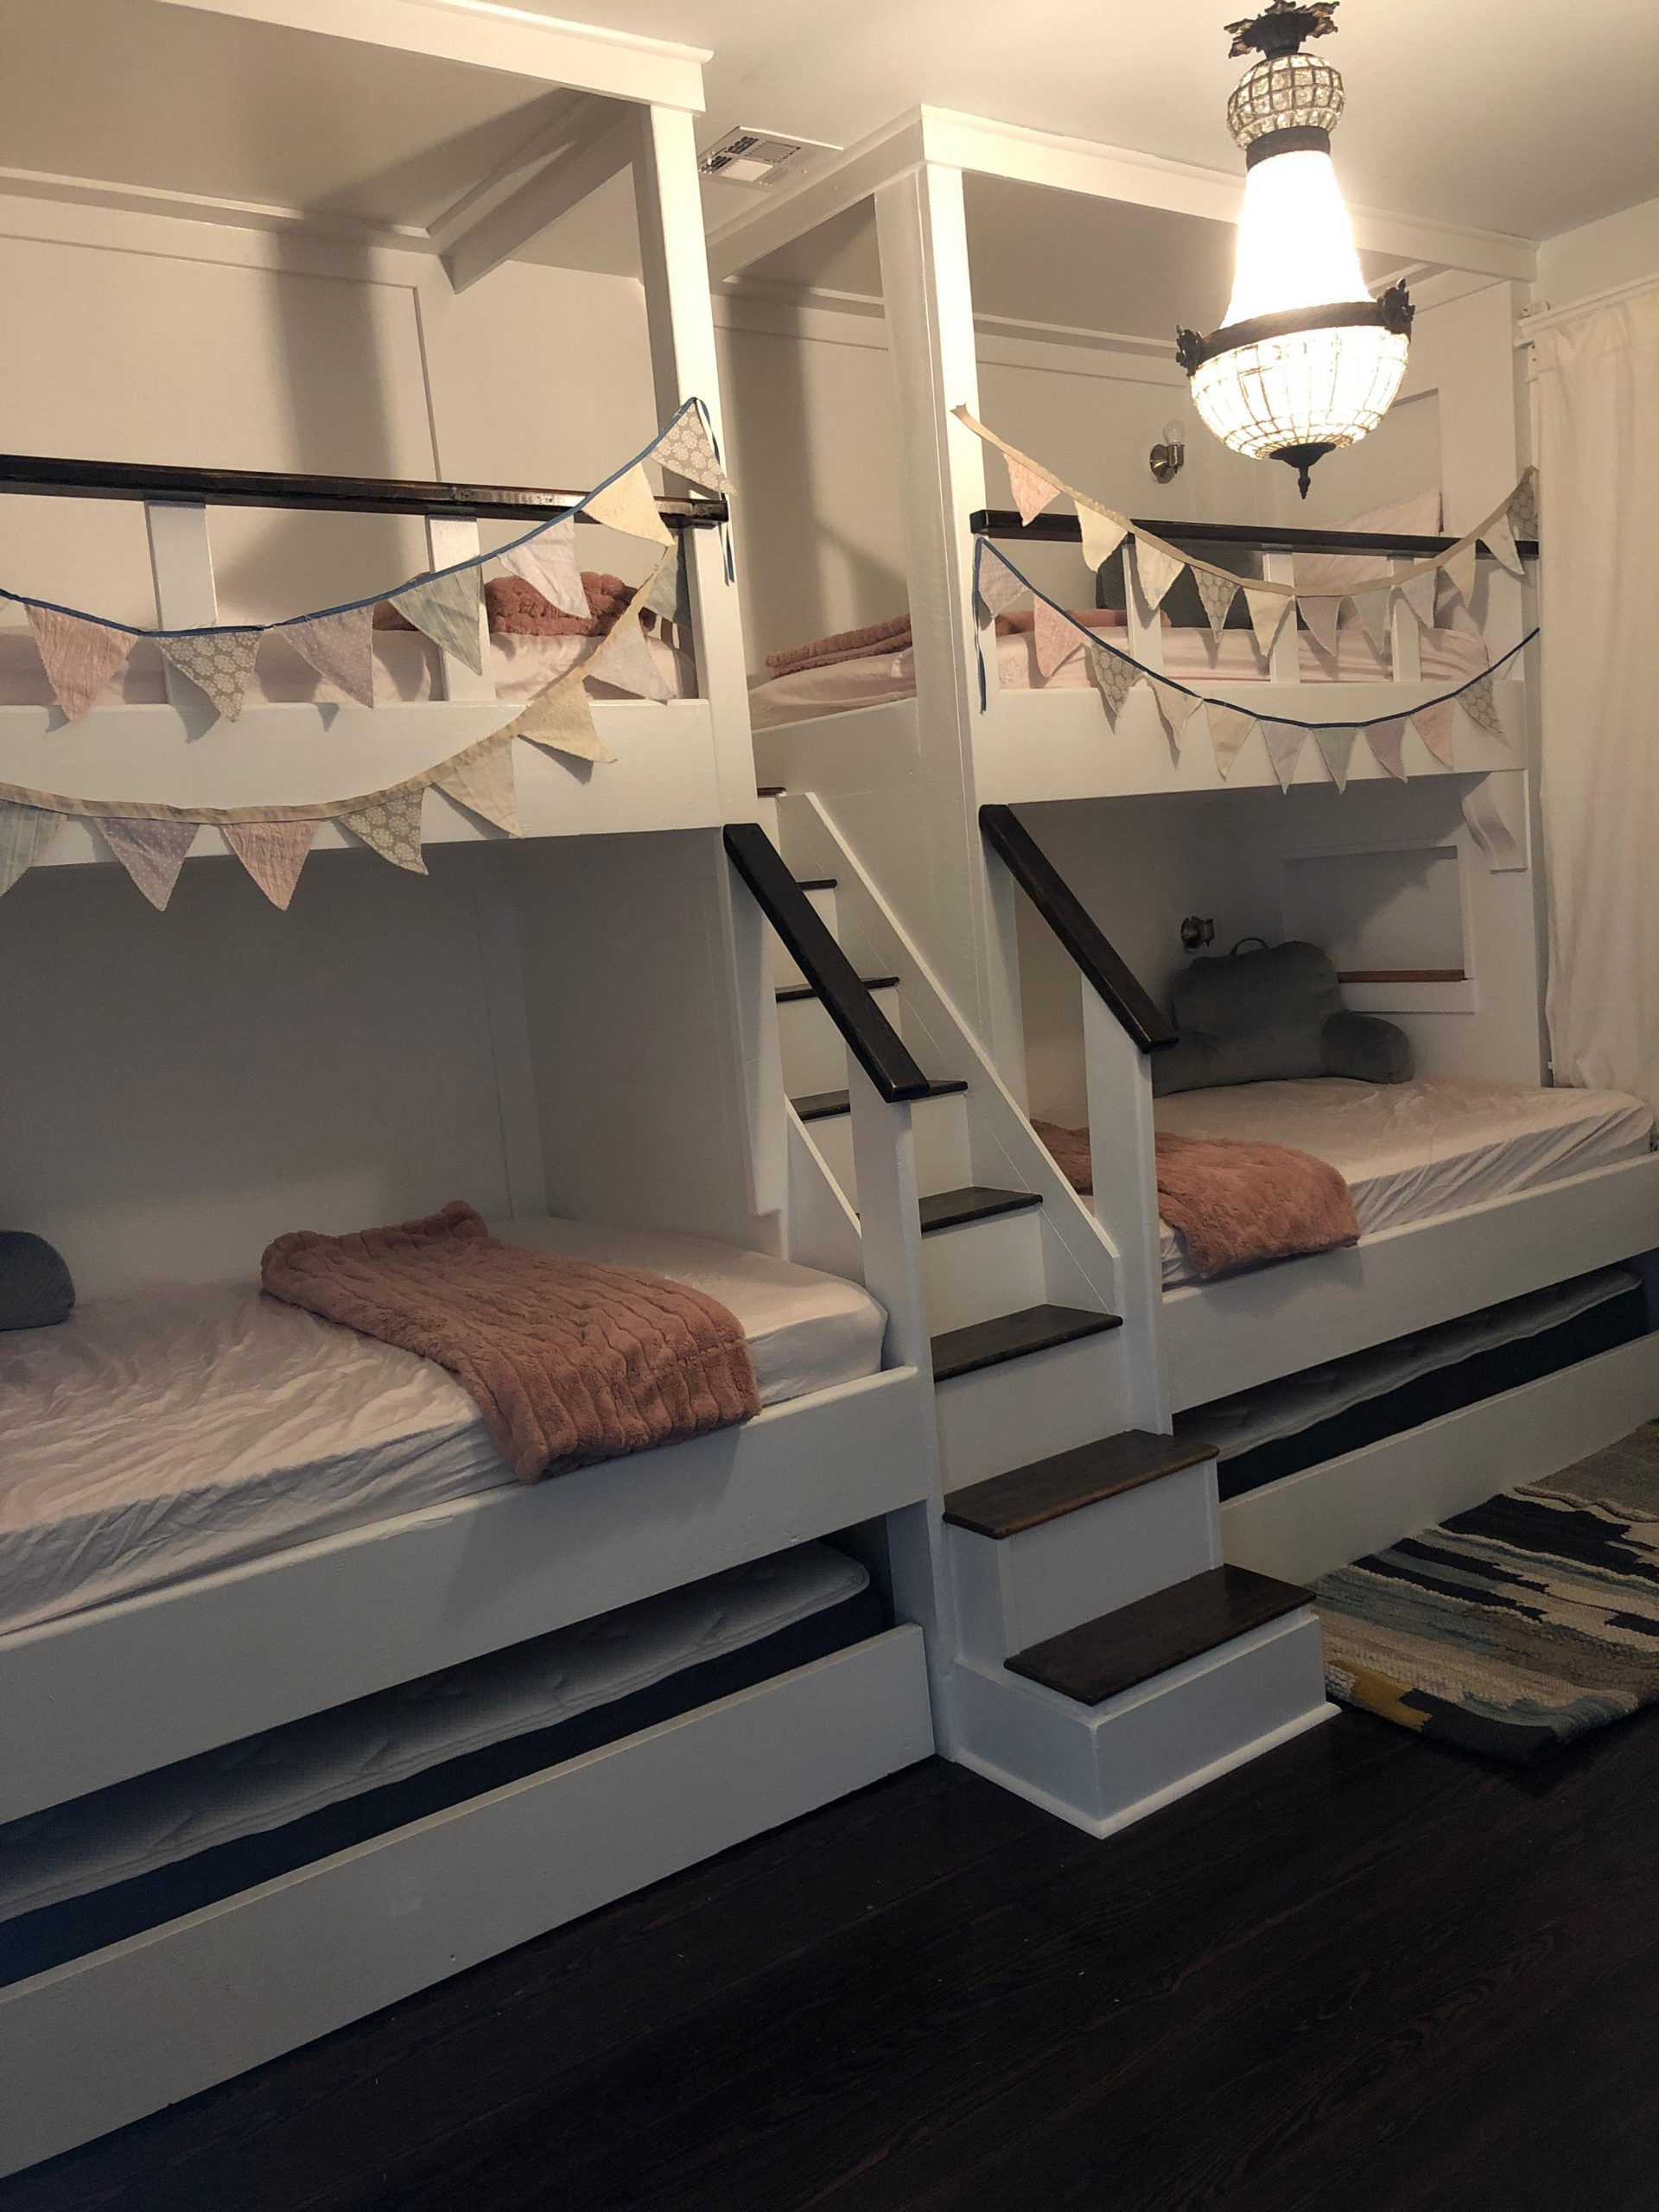 double bunk bed with slide on double bunk beds 2020 double bunk beds 2020